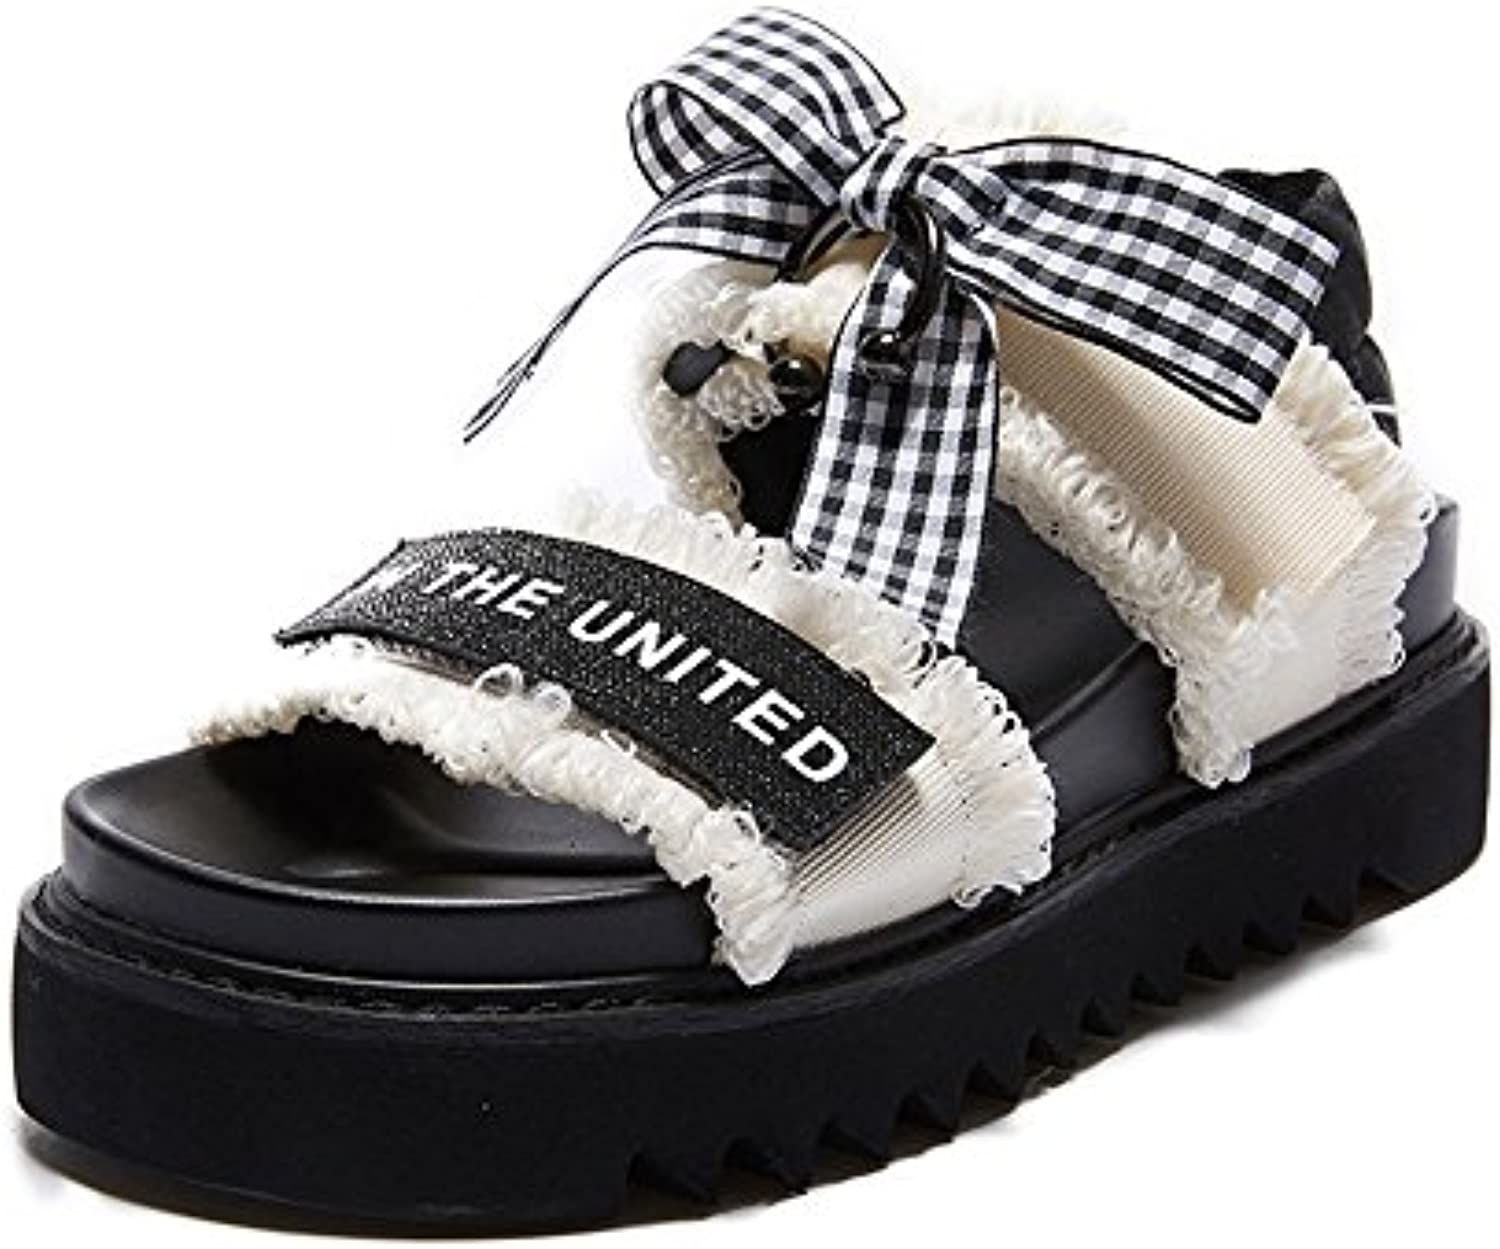 c45557737ed9b Sandals Feifei Women s Shoes Summer Summer Summer Cloth Material Fashion  Simple Comfortable Thick Bottom Beach Black and White... B07CBRRVWP Parent  46ba91